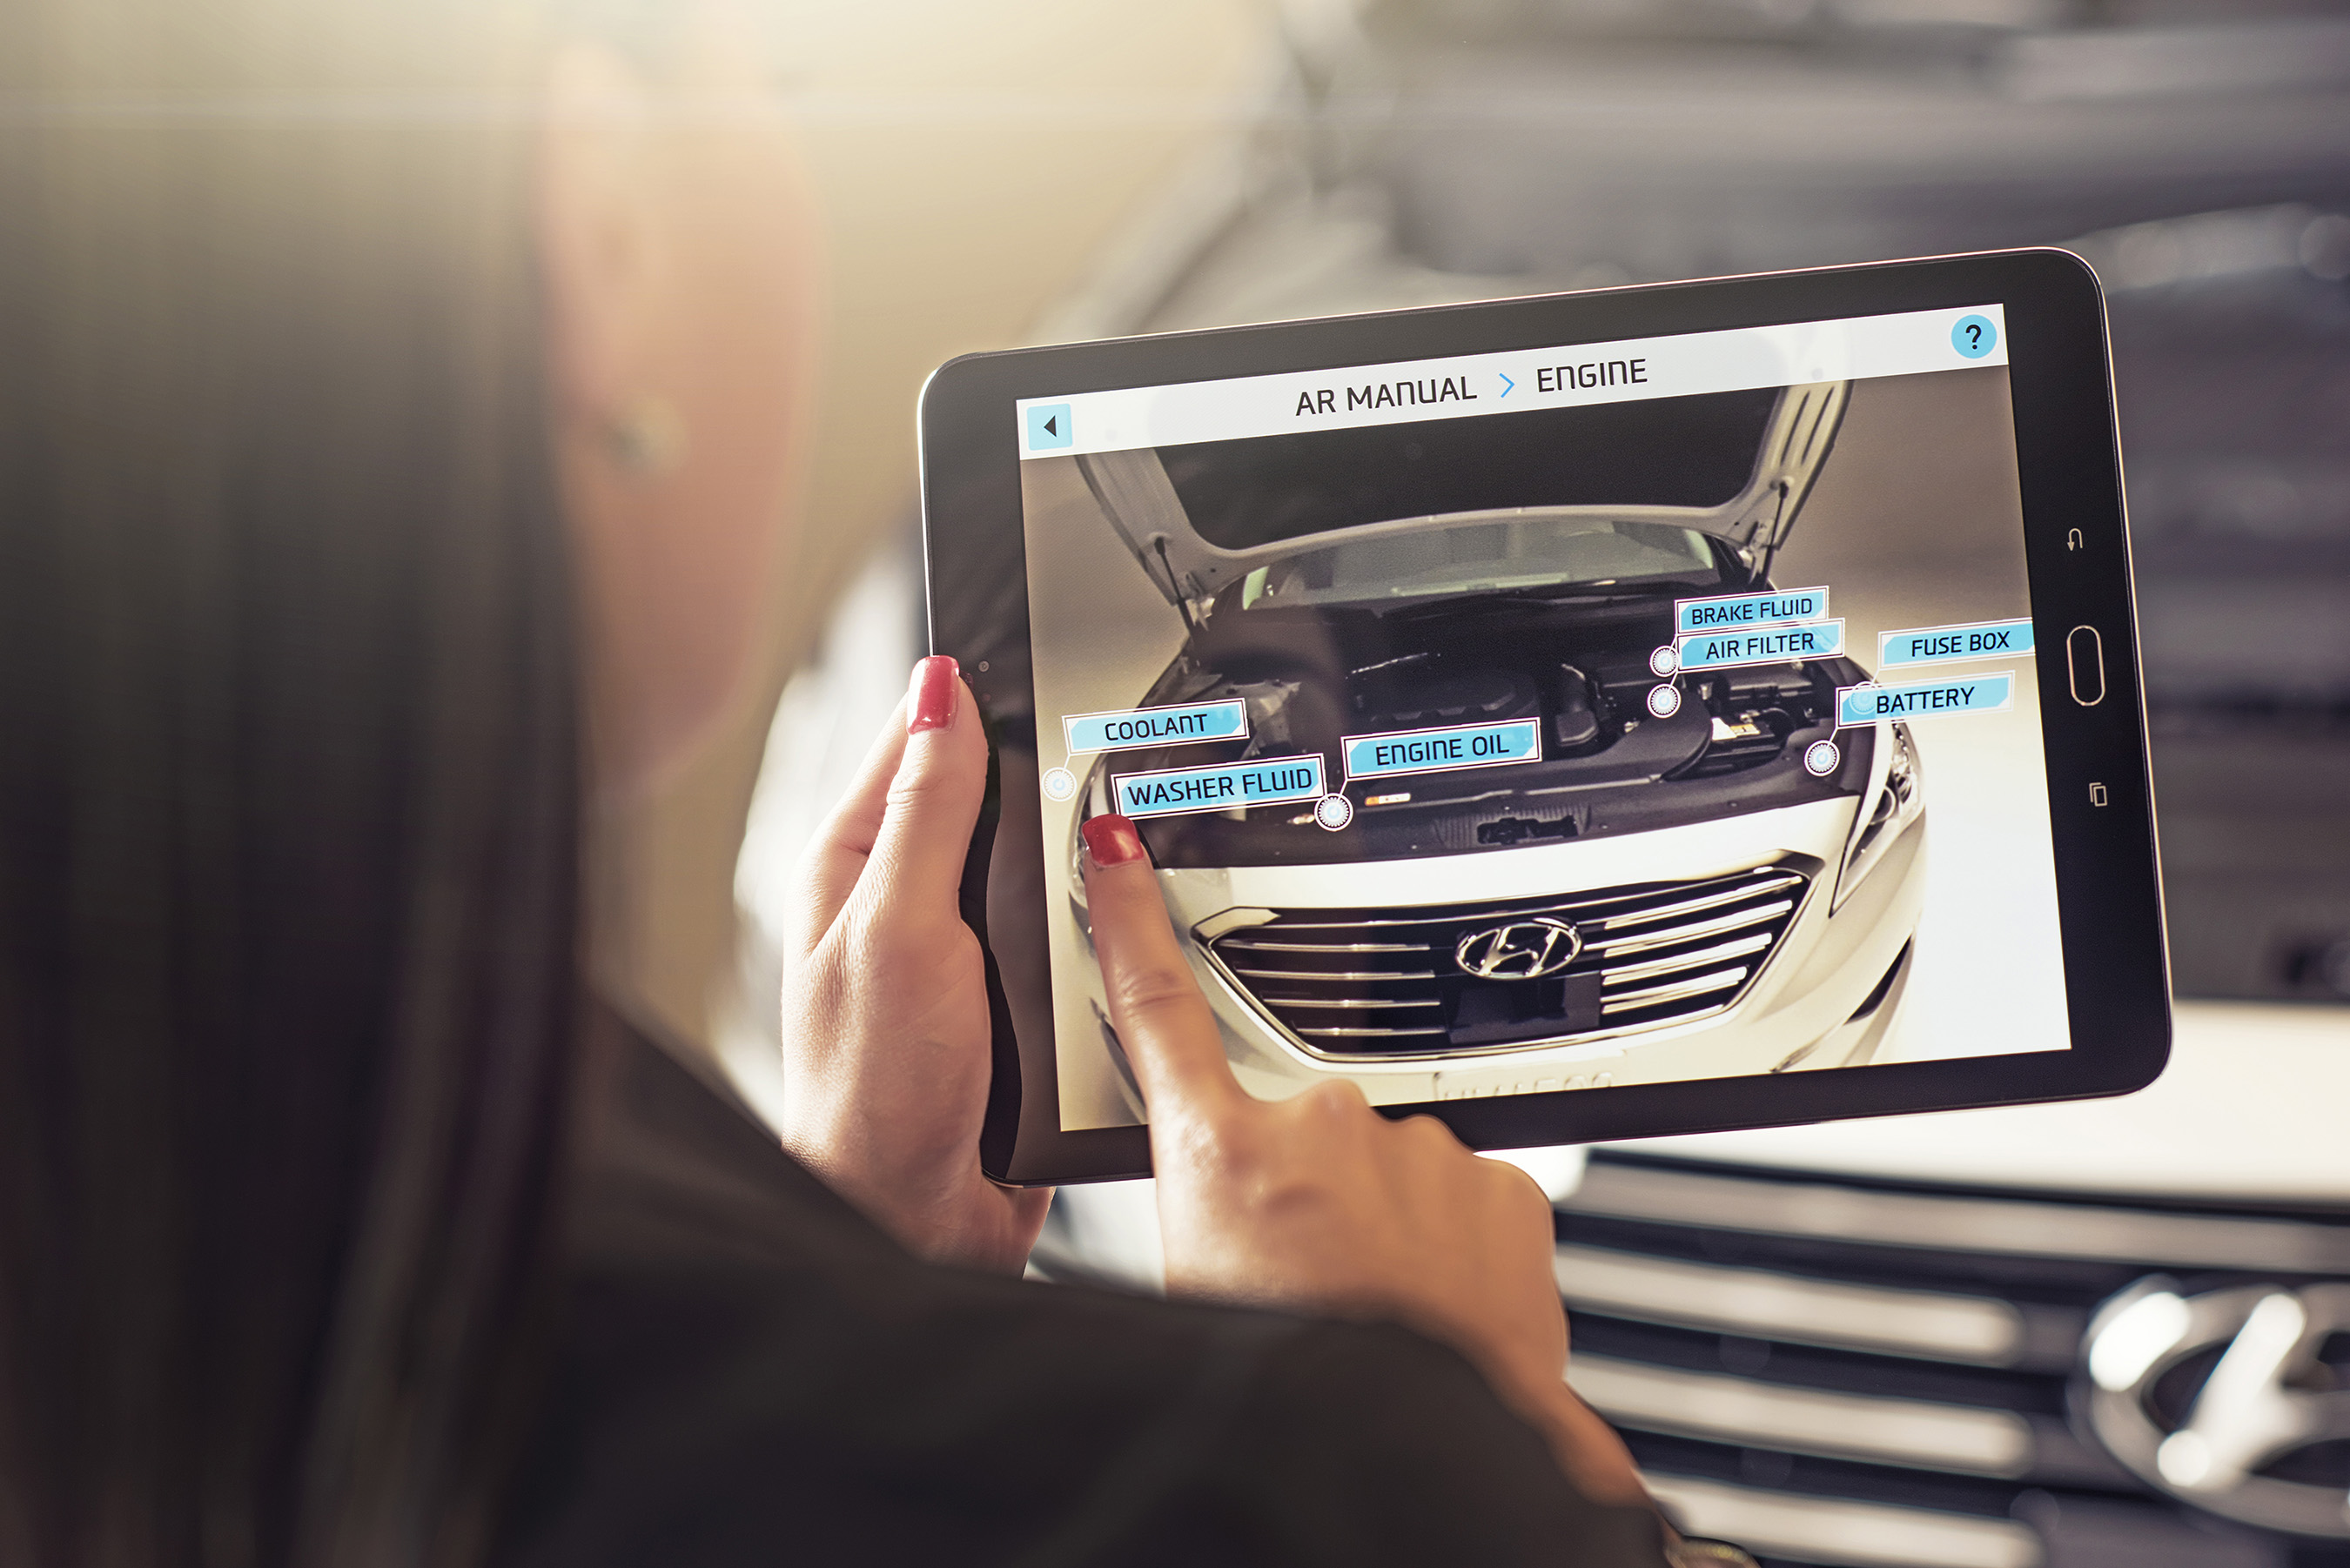 HYUNDAI VIRTUAL GUIDE INTRODUCES AUGMENTED REALITY TO THE OWNER\'S MANUAL